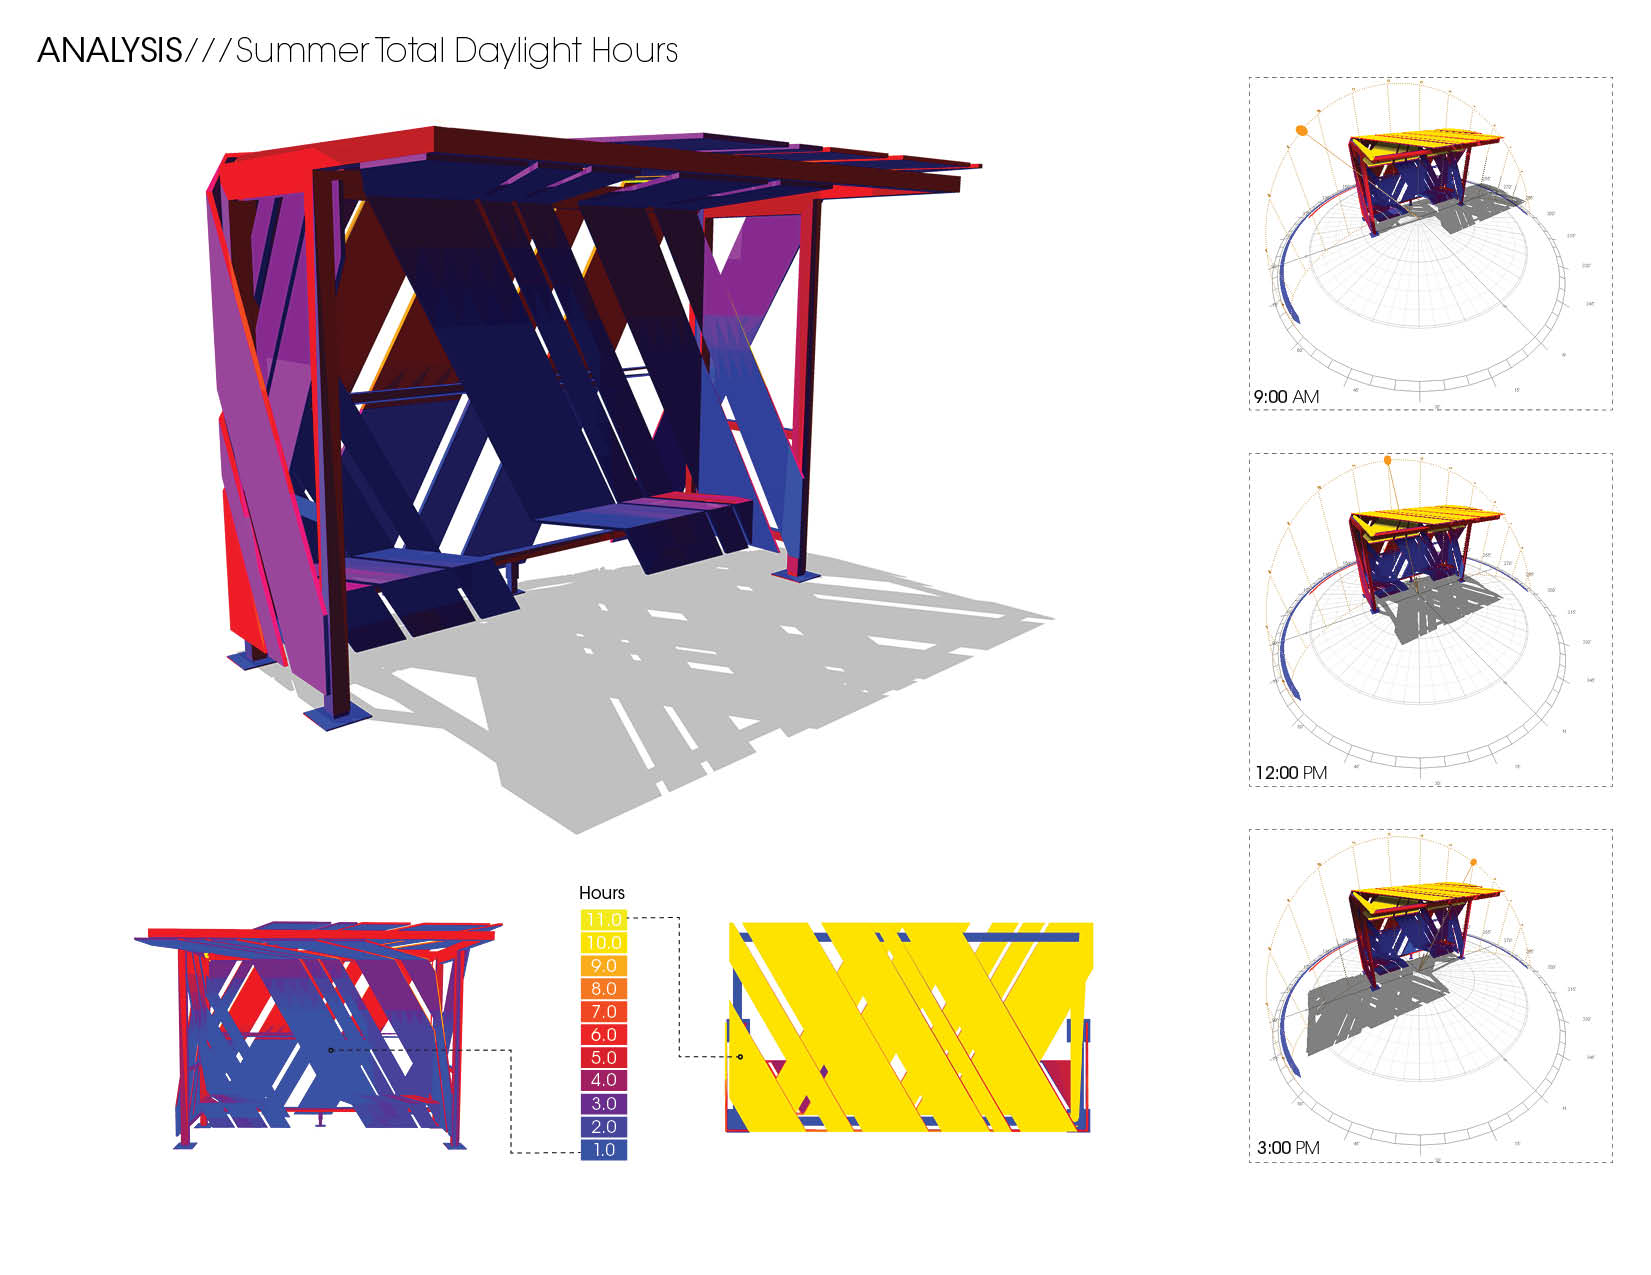 Asteriskos-Design-Digital-Fabrication-Mary-O'Connor-Memorial-Transit-Shelter-Architekton-Tempe-Sunlight-Analysis-Ecotect.jpg